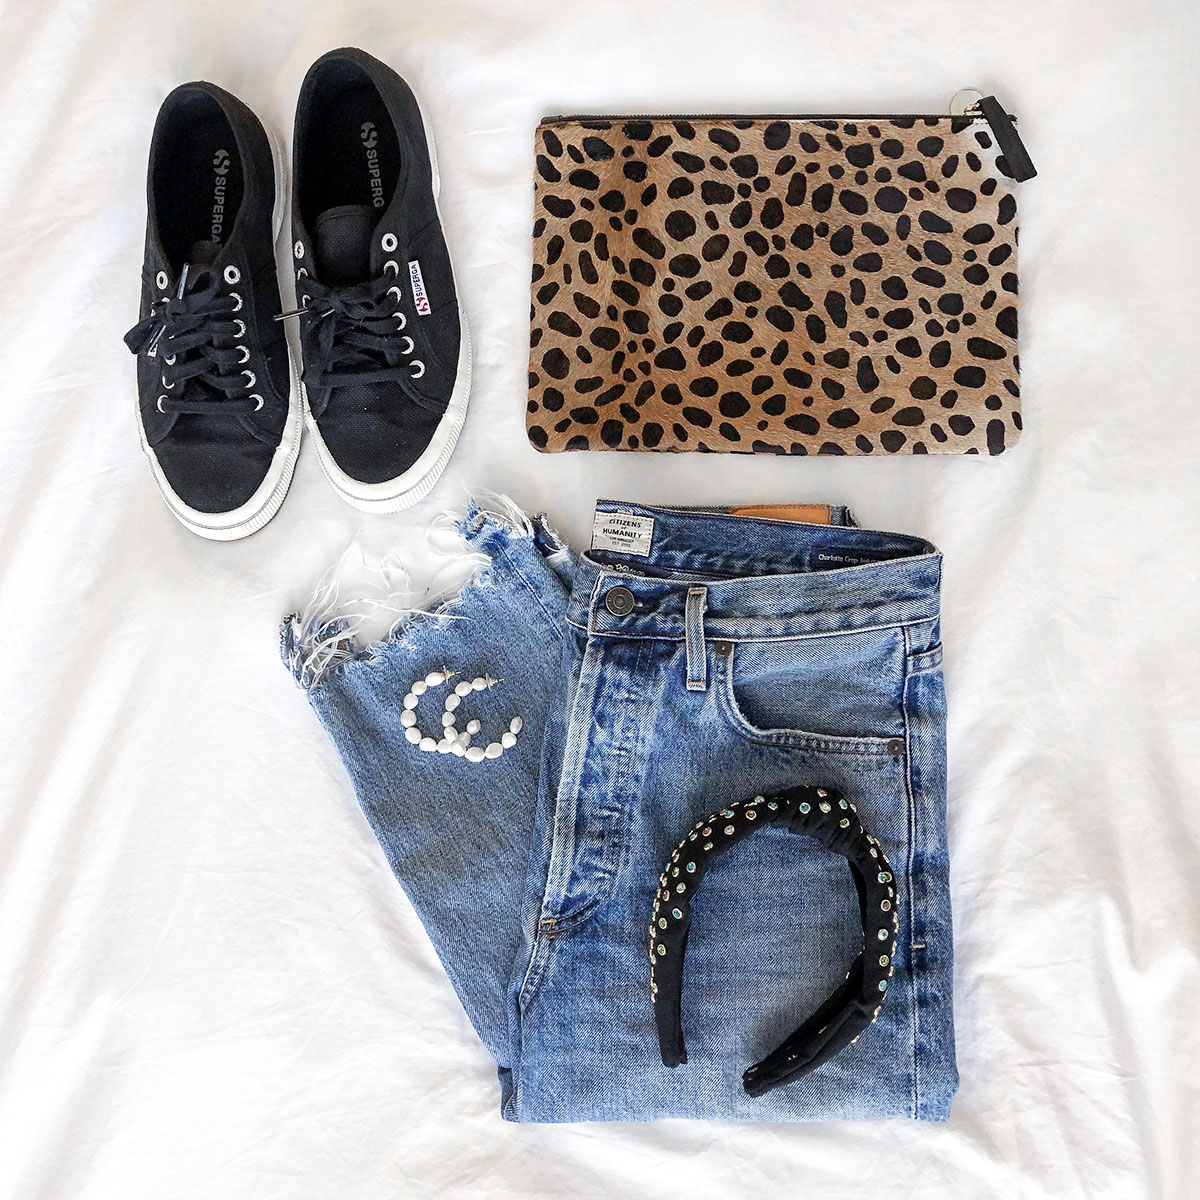 Shopbop Sale Picks: Superga Classic Sneakers, Clare V Leopard Pouch, Lele Sadoughi Embellished Headband, BaubleBar Pearl Hoop Earrings, Citizens of Humanity Charlotte High-Rise Jeans with Frayed Hem